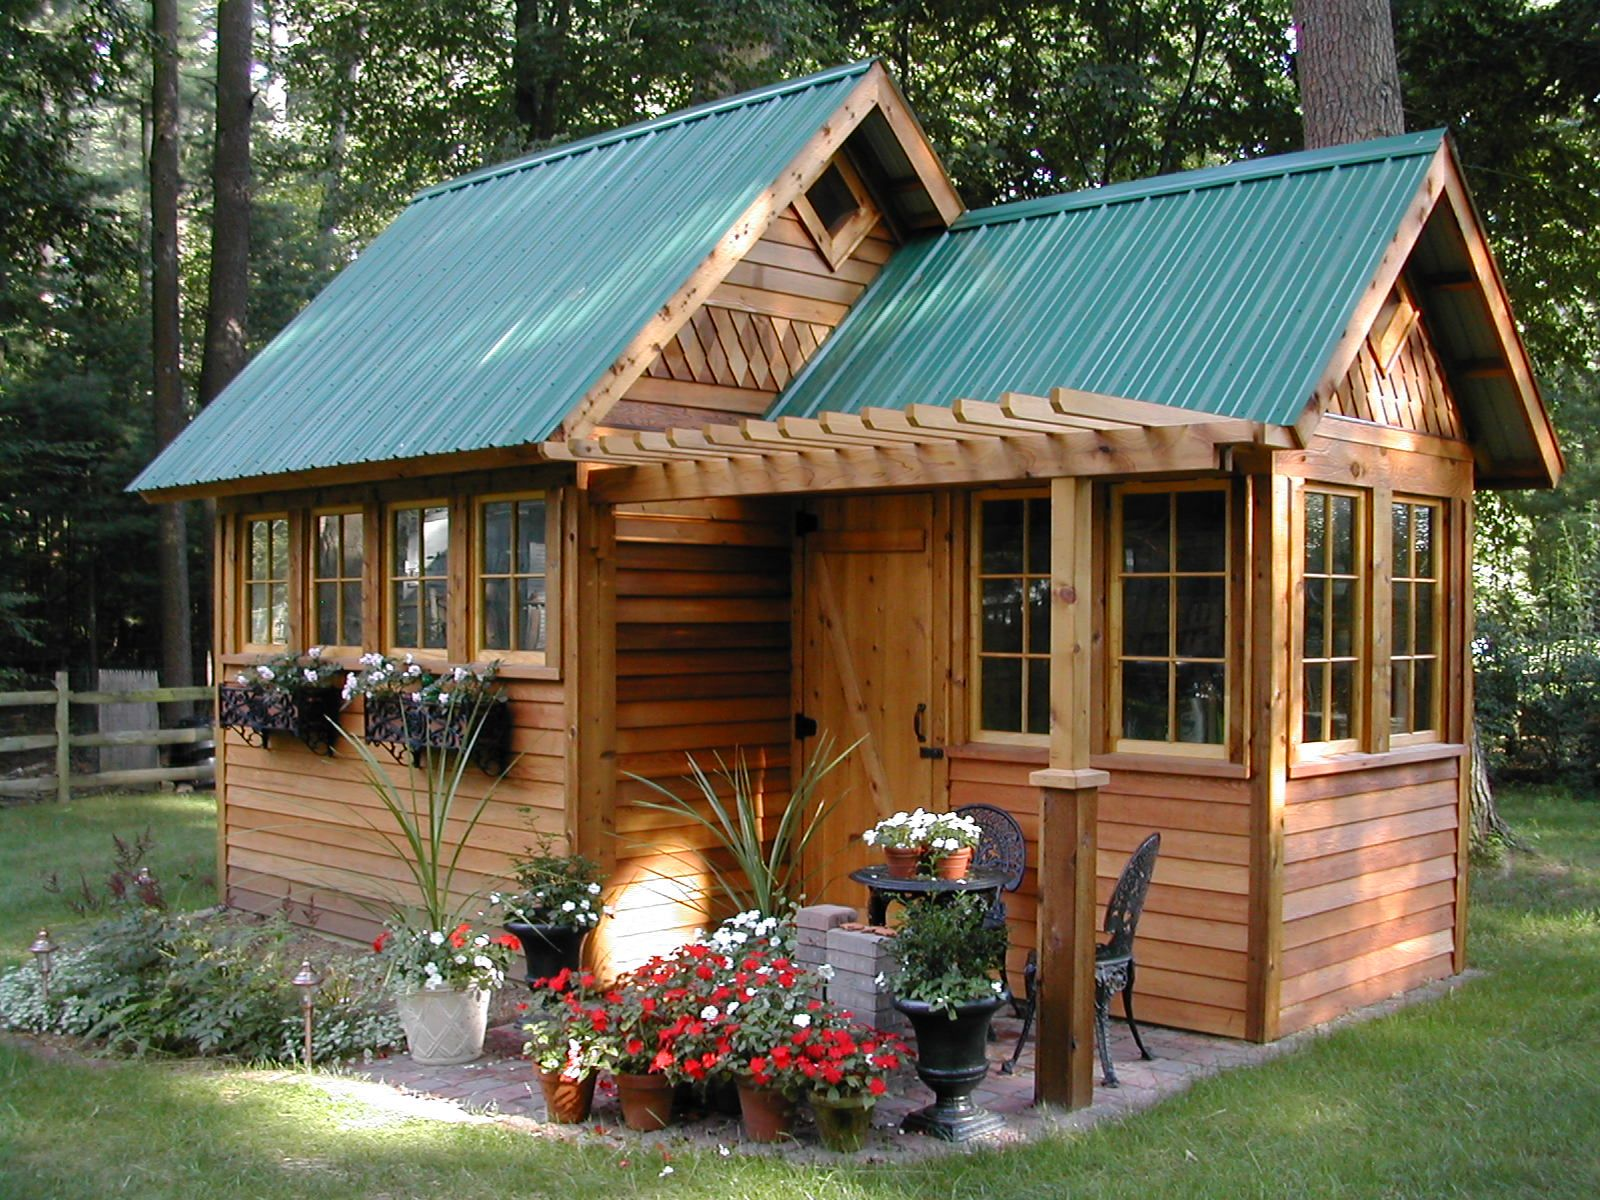 Garden Shed Designs storage sheds designs Want A Garden Shed Love